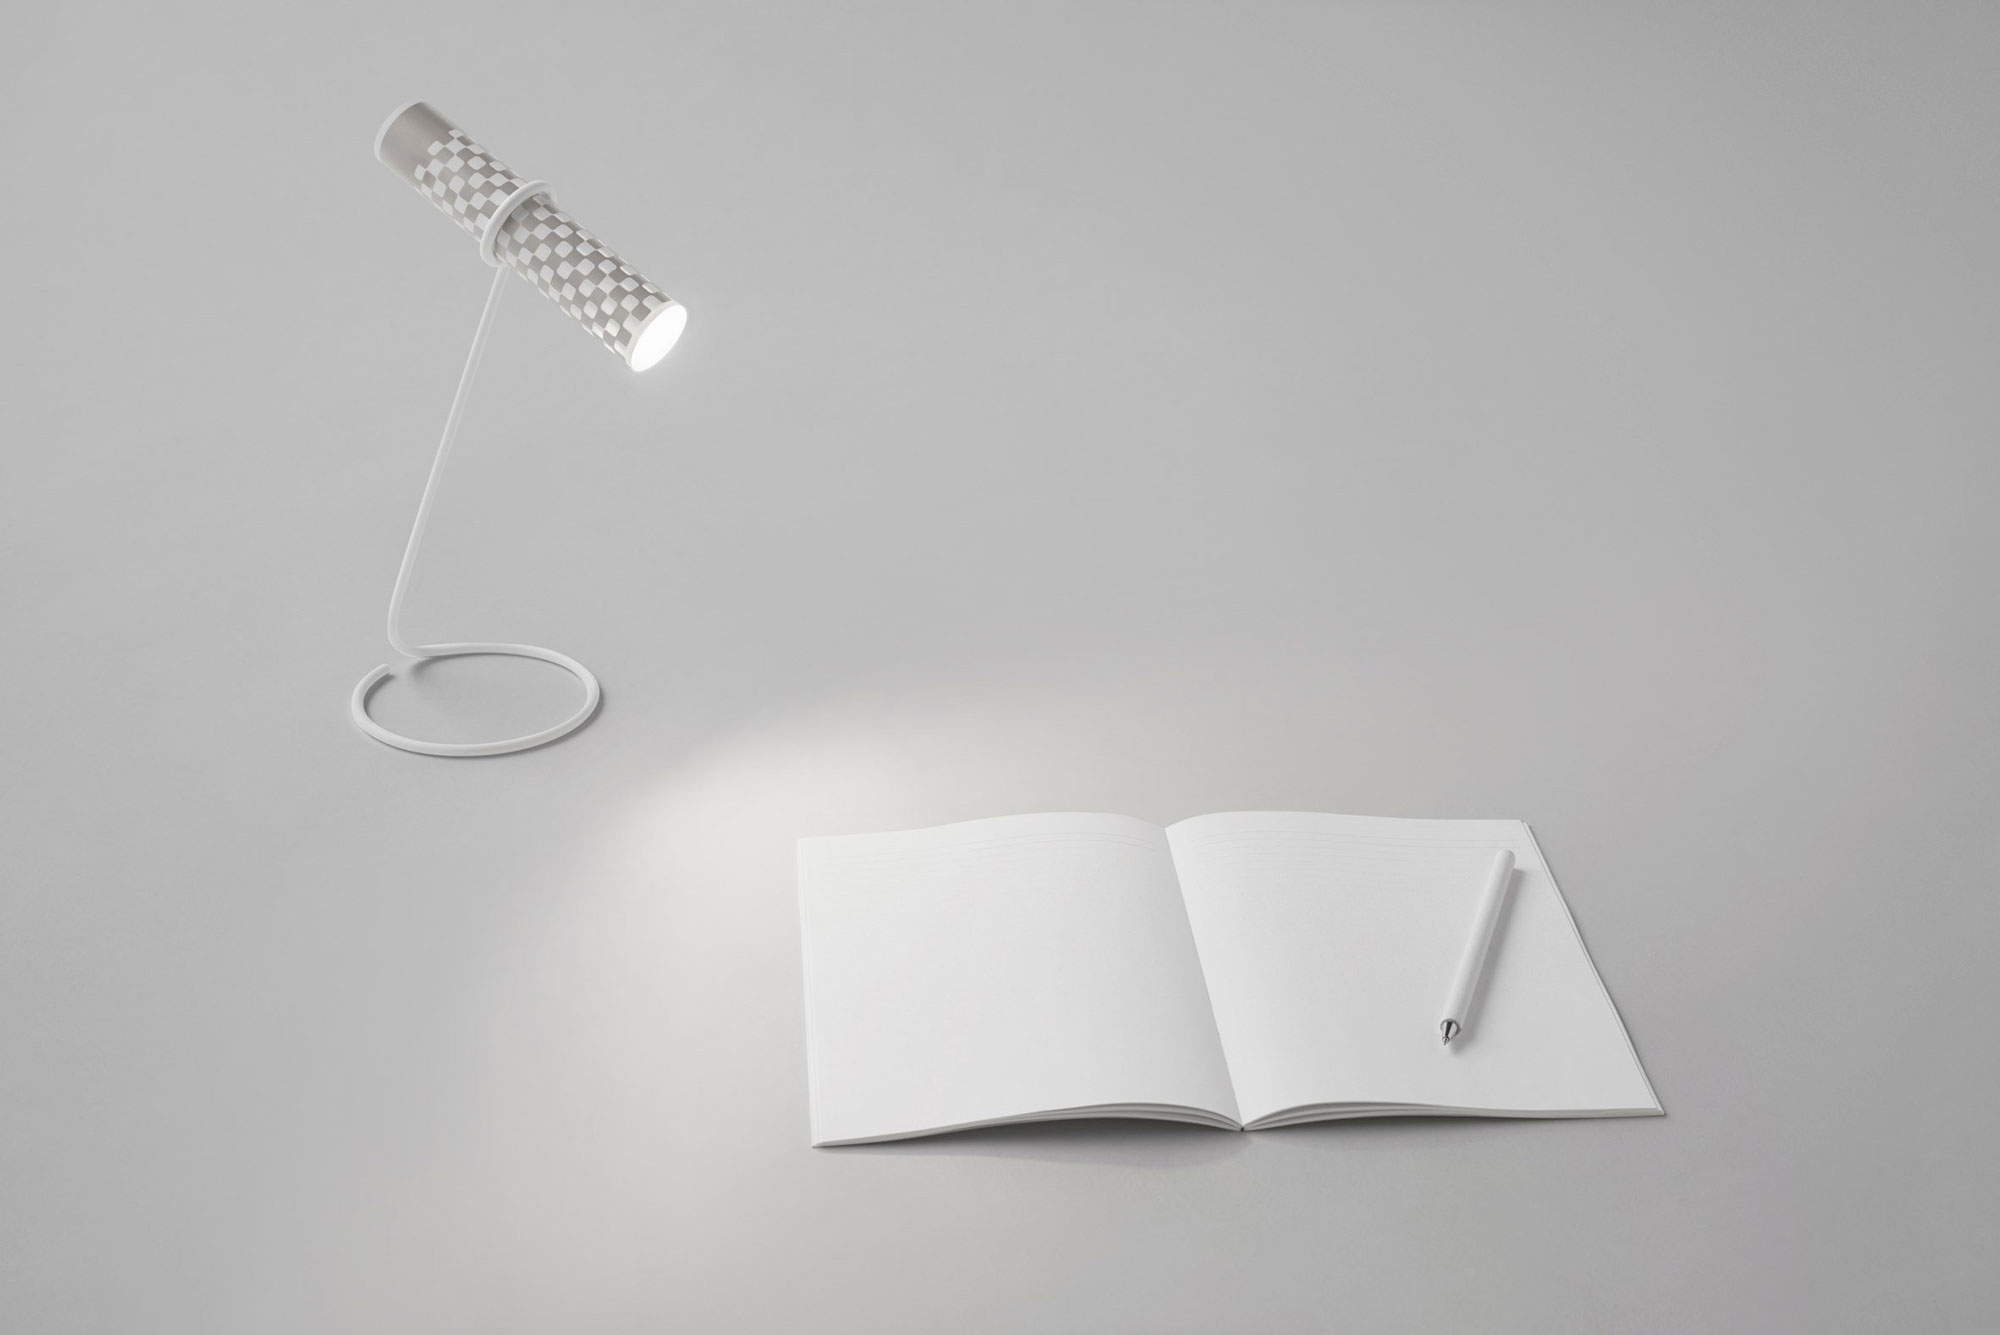 A Flashlight Made of Paper by Japanese Studio Nendo